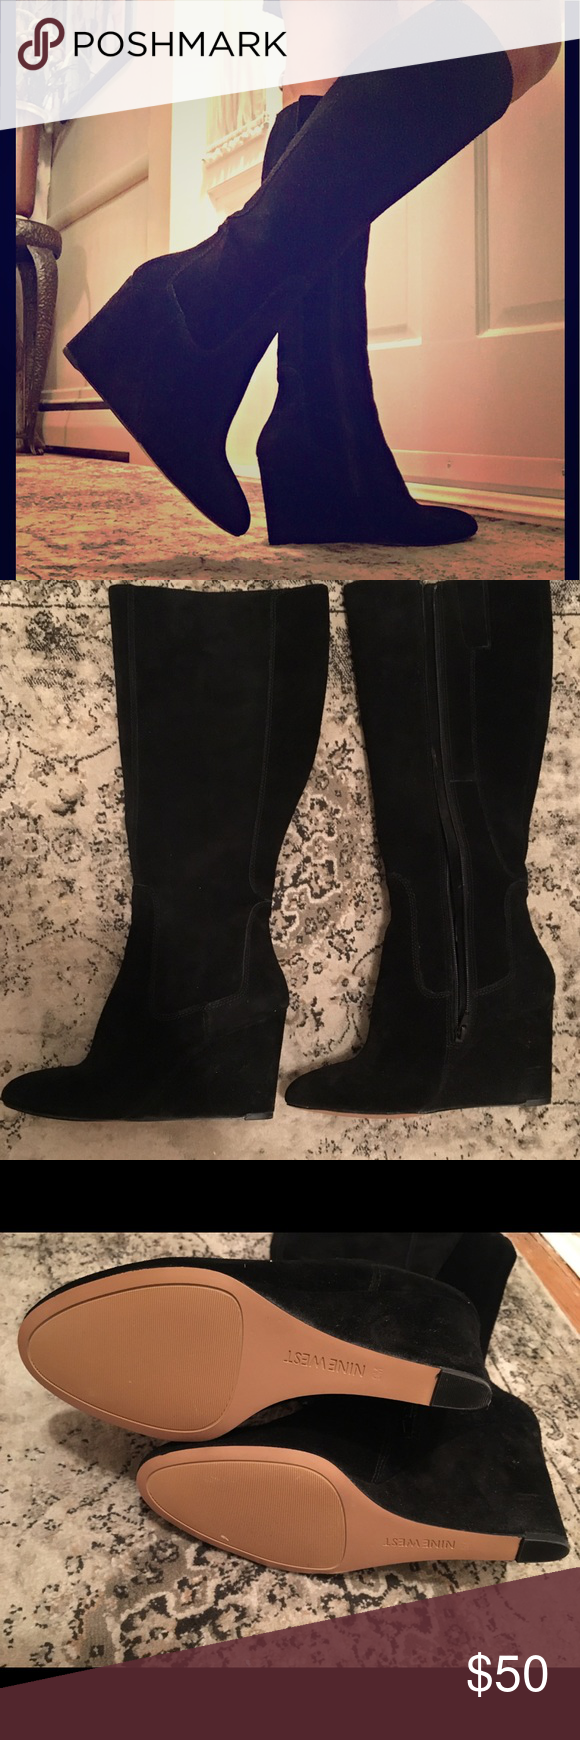 Nine West black long boots size 9M Classy black suede Nine West long boots leath  Nine West black long boots size 9M Classy black suede Nine West long boots leather upper...